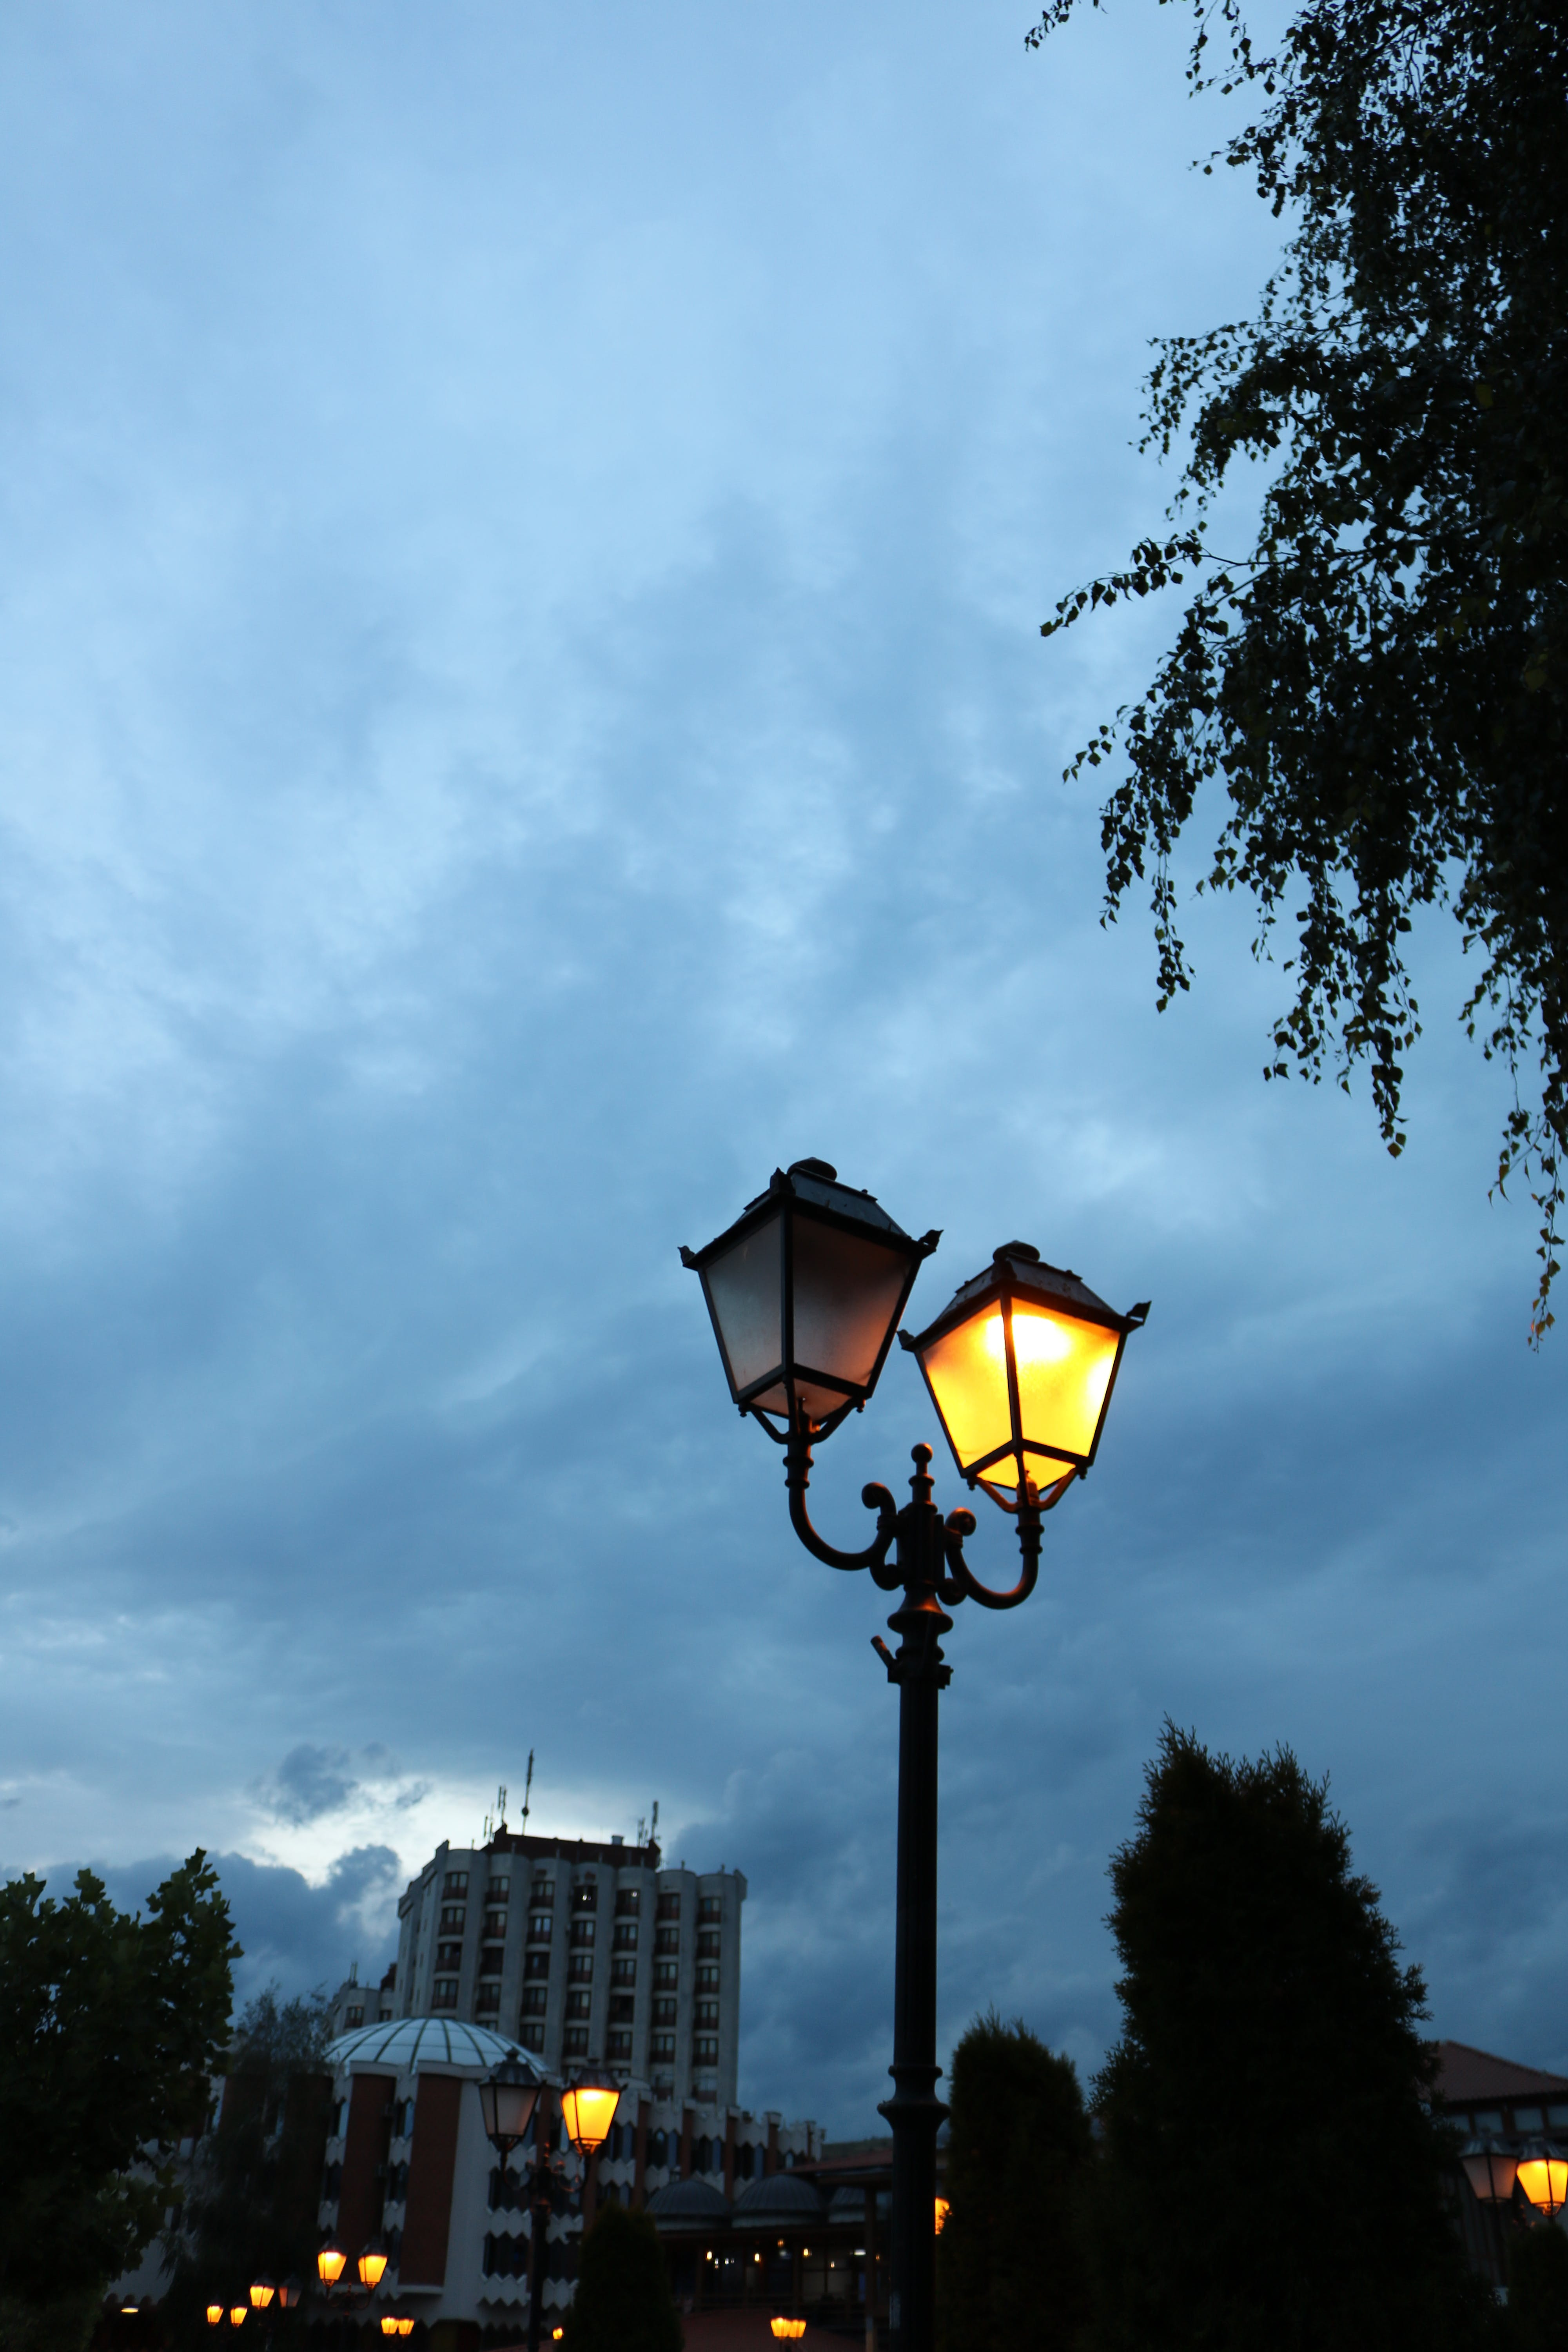 Free stock photo of city, cloudy skies, evening, lamp